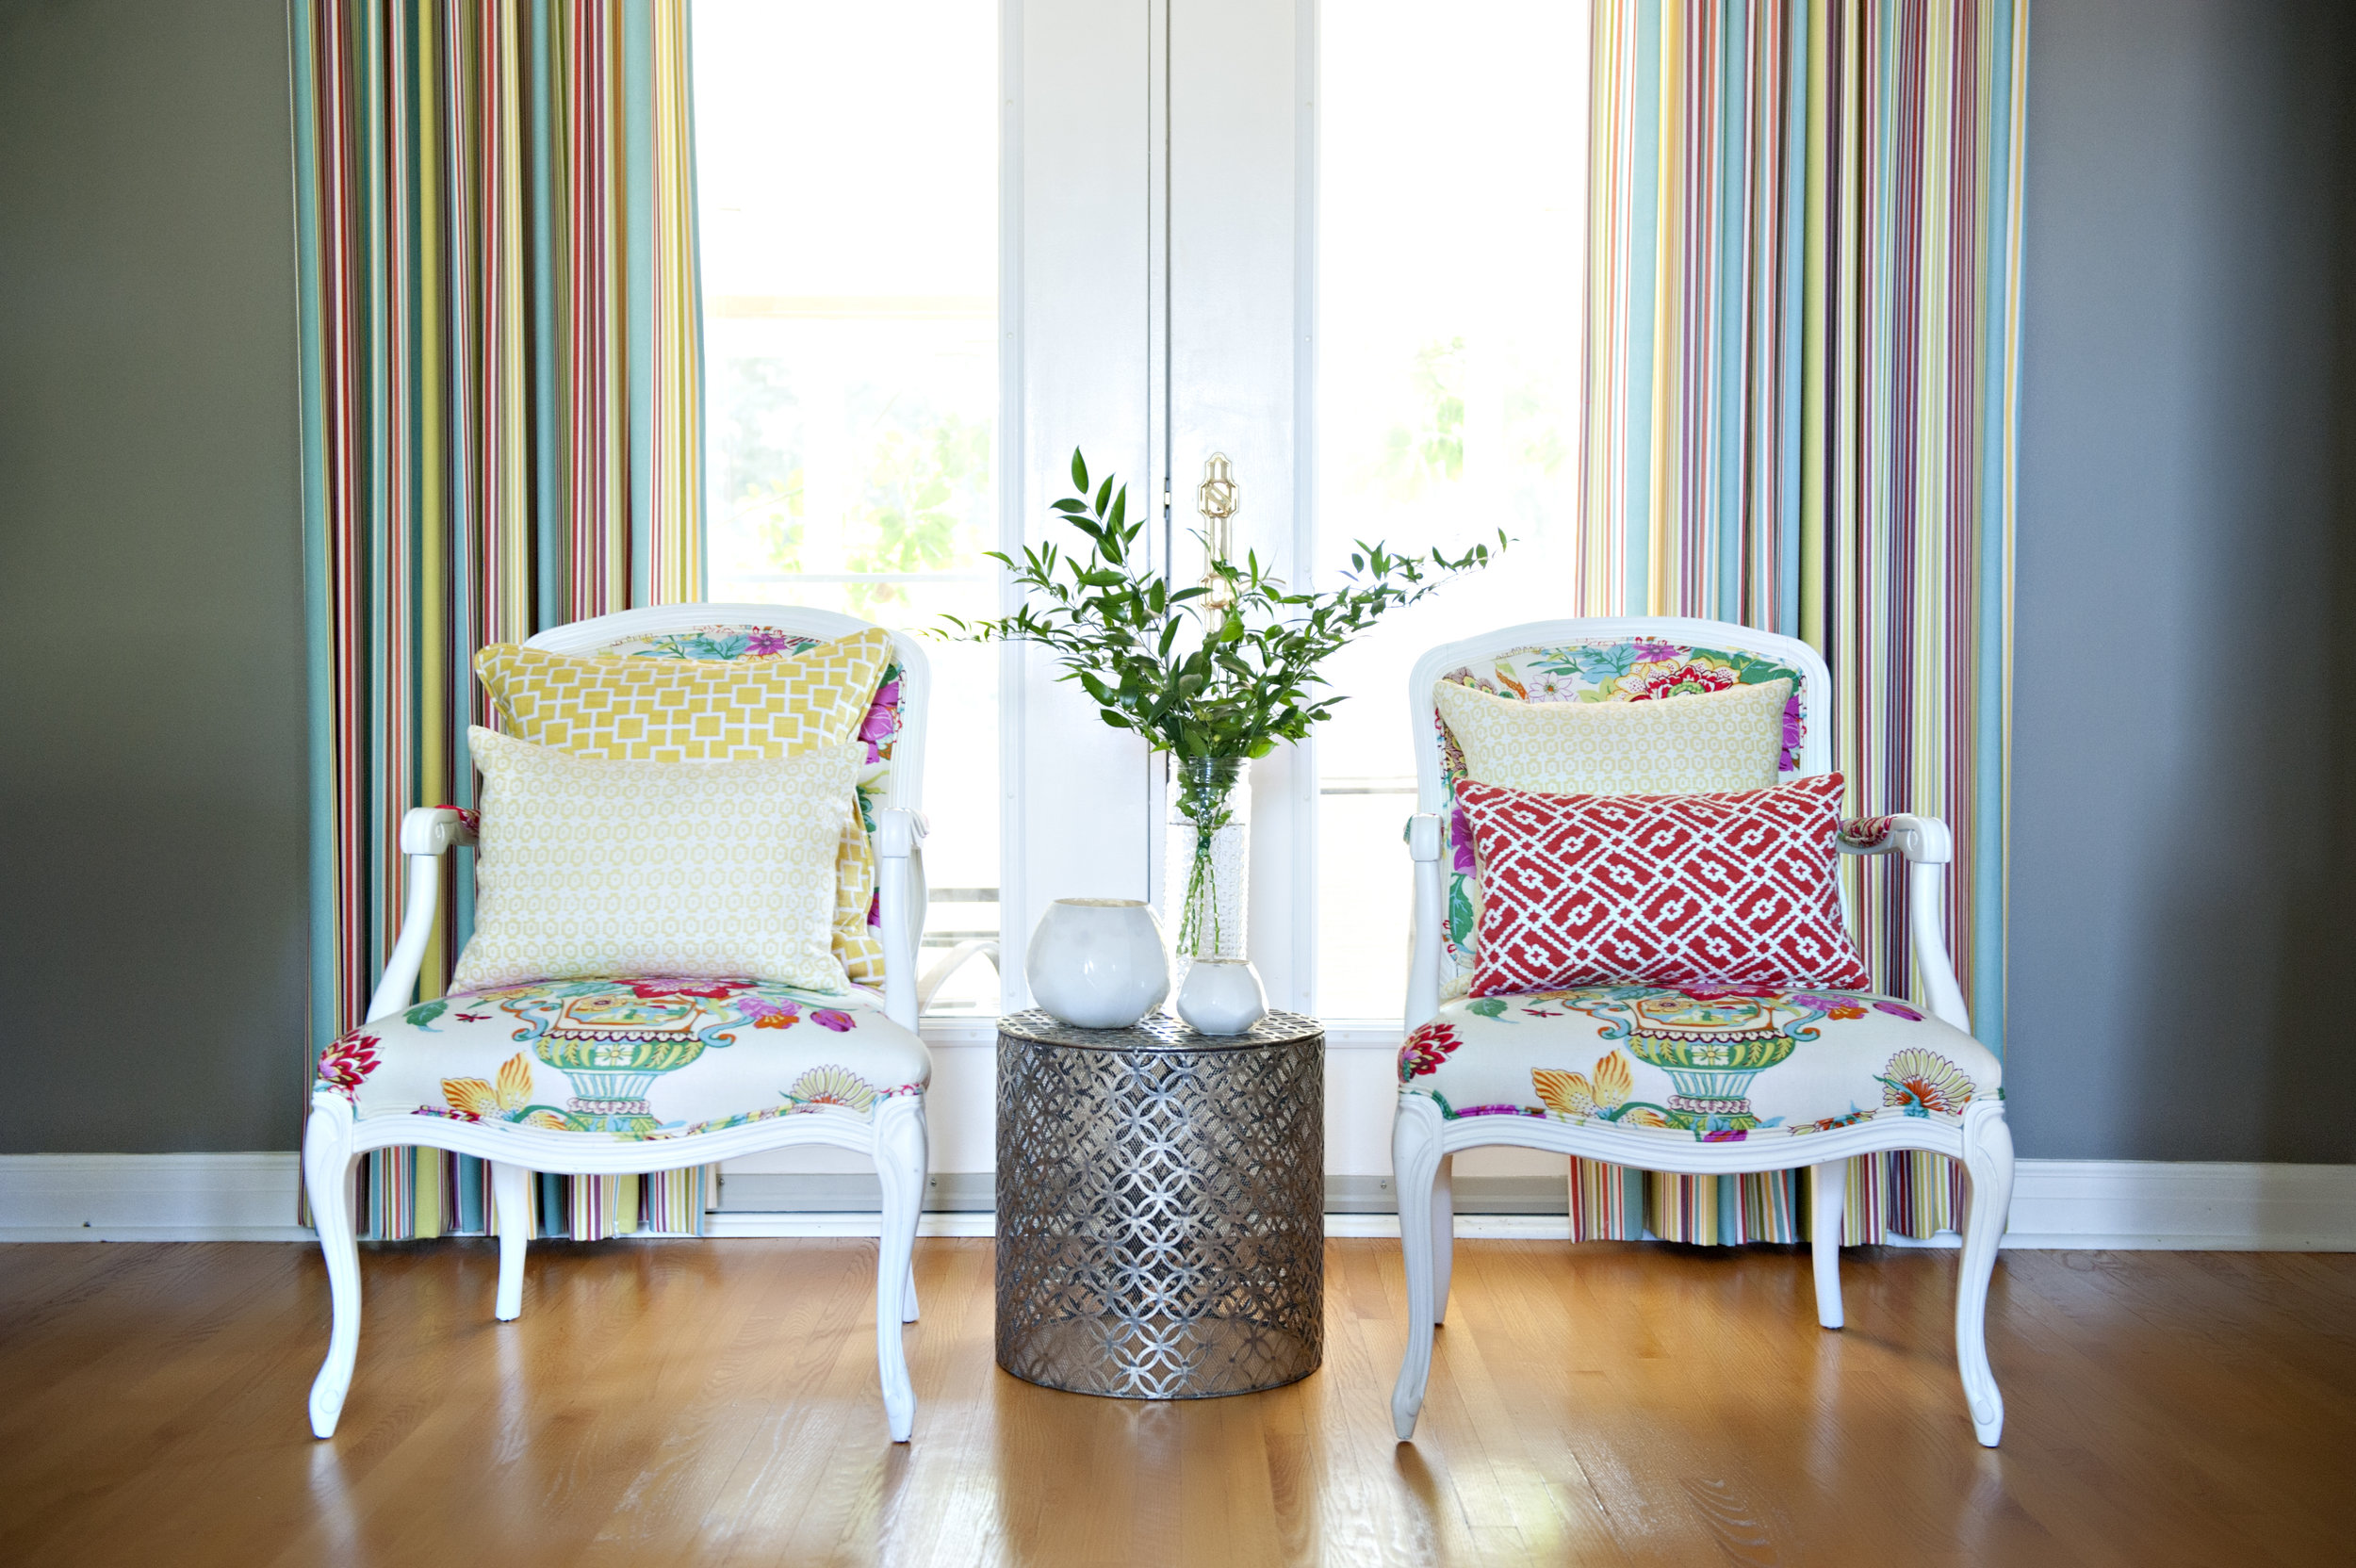 Candace-Plotz-Irving-Chairs-Colourful-Yellow-Red-Bright-Patterns